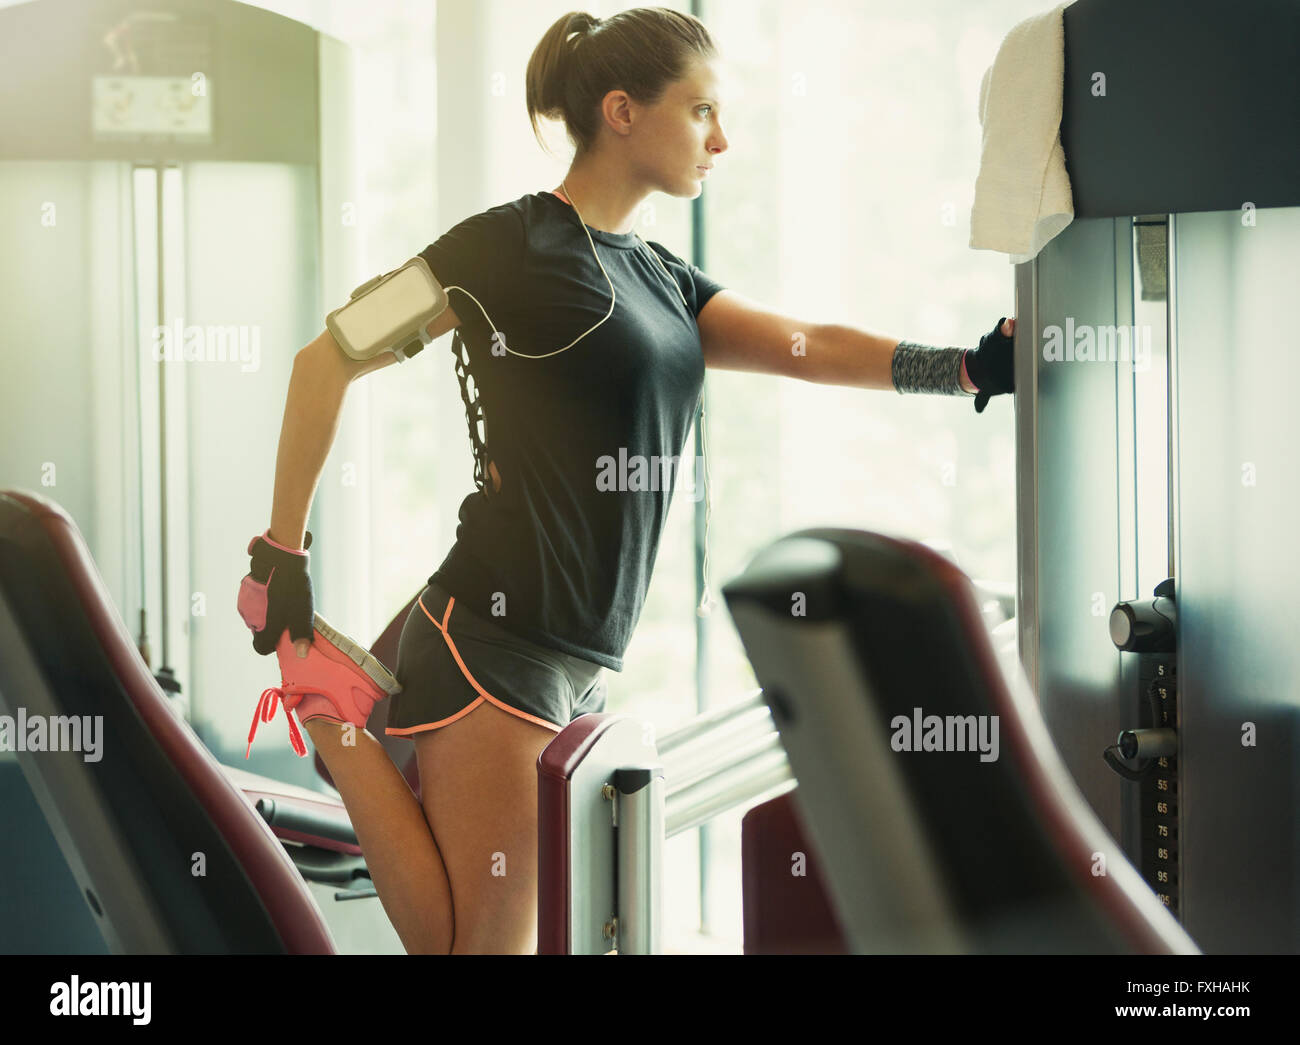 Focused woman stretching leg at exercise equipment in gym - Stock Image